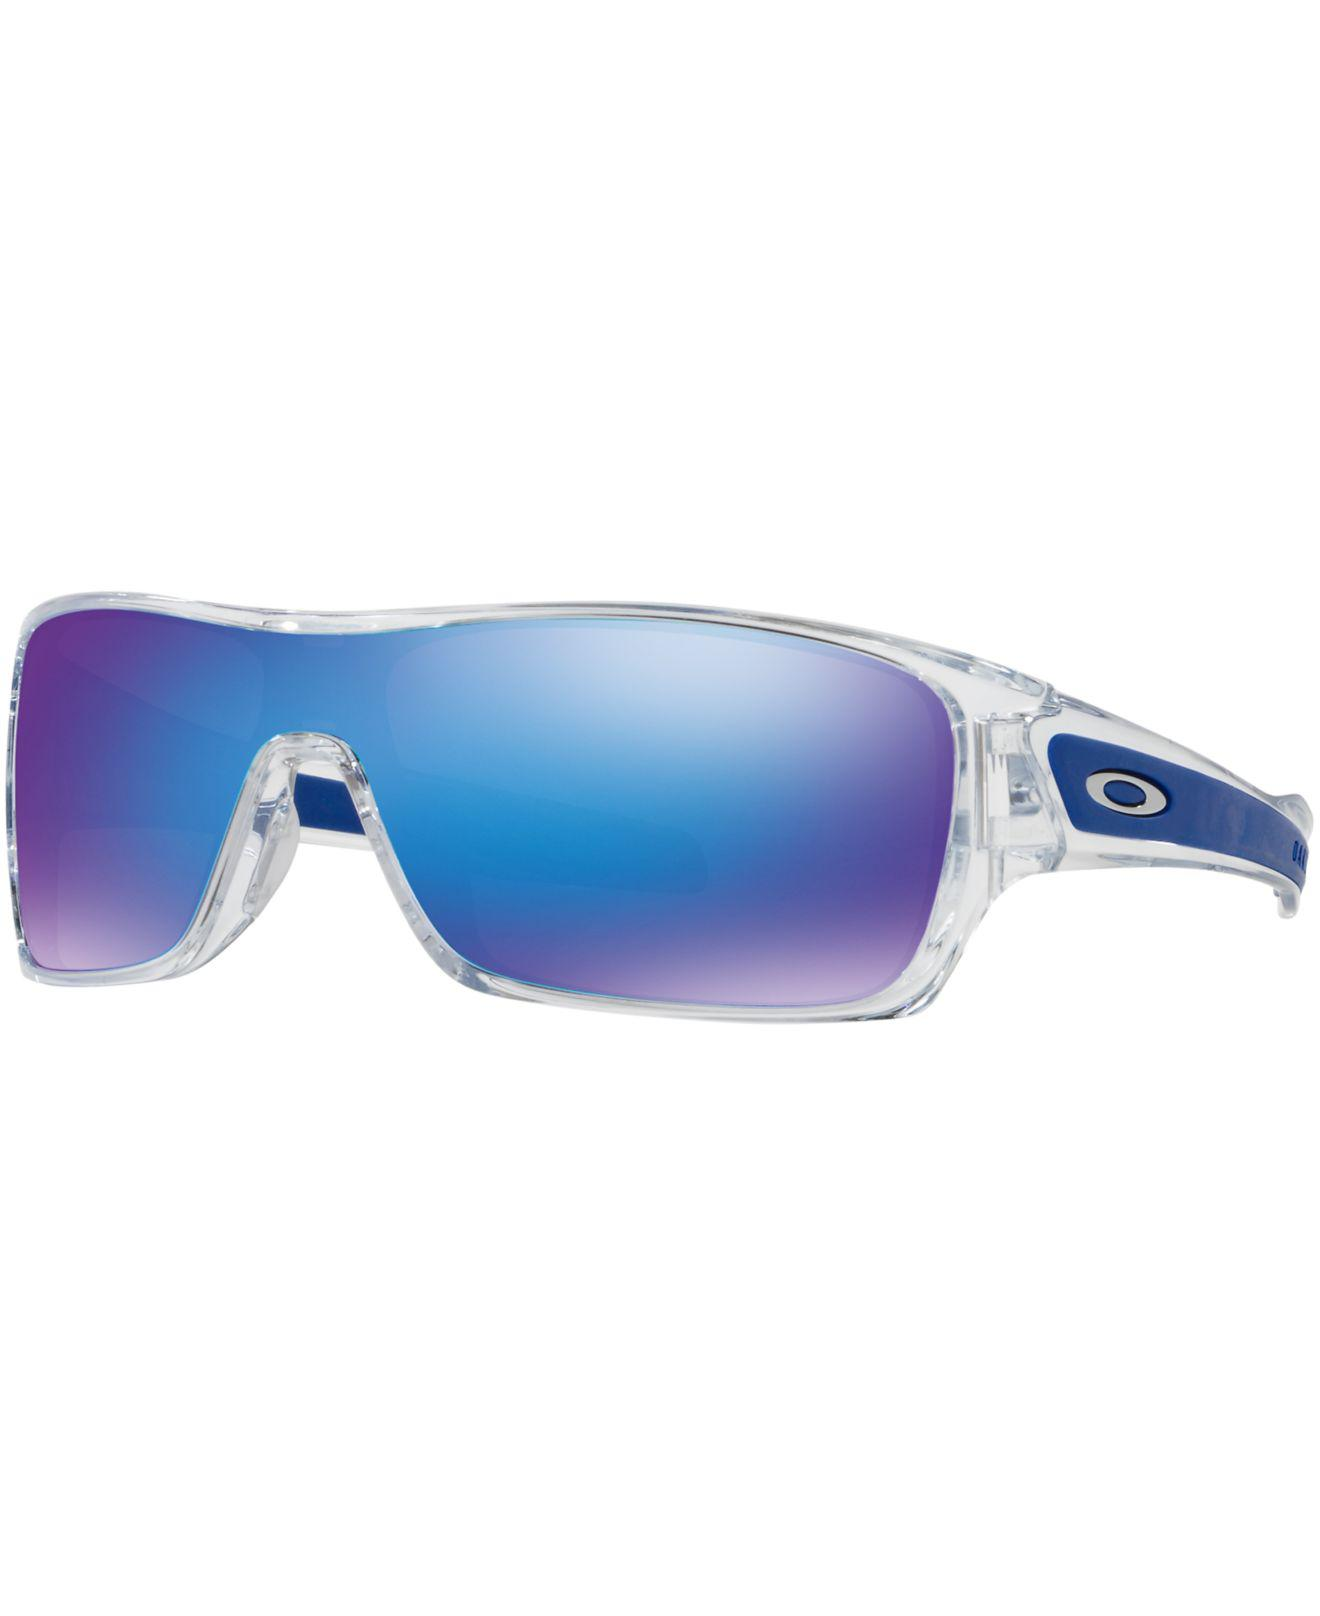 86cb75ee55 Oakley. Men s Blue Turbine Rotor Sunglasses